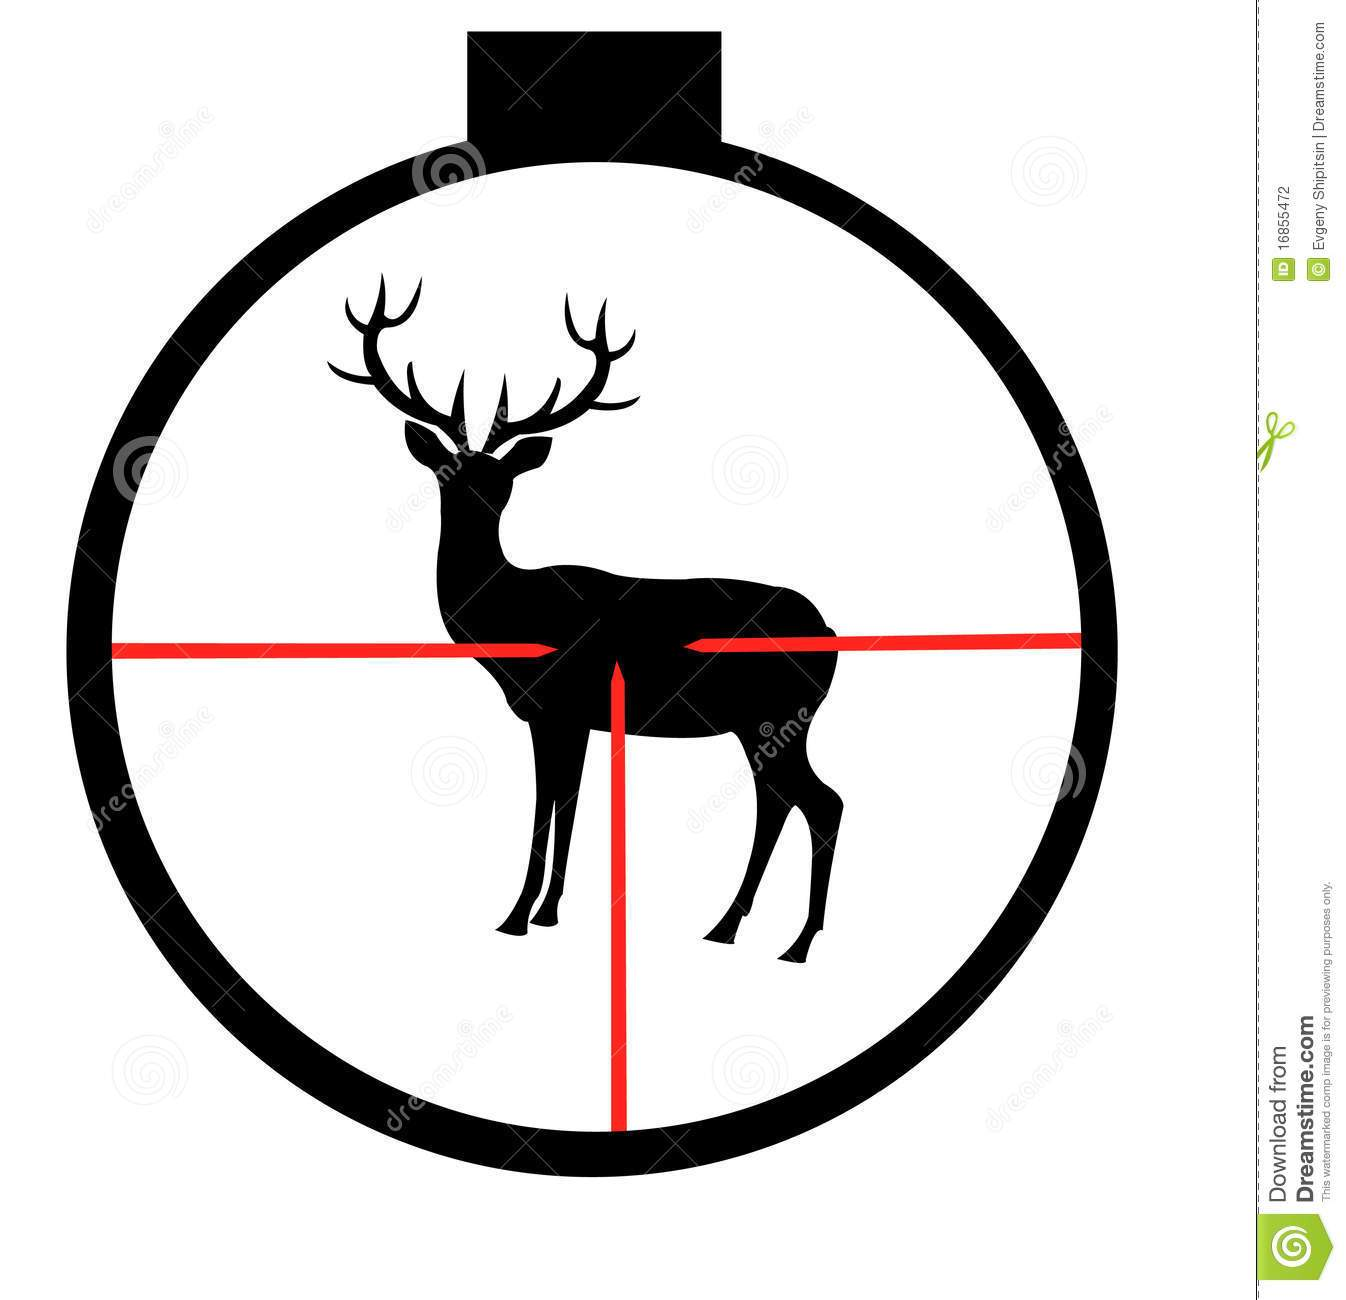 Hunting deer clipart banner black and white download Hunting deer clipart 6 » Clipart Portal banner black and white download